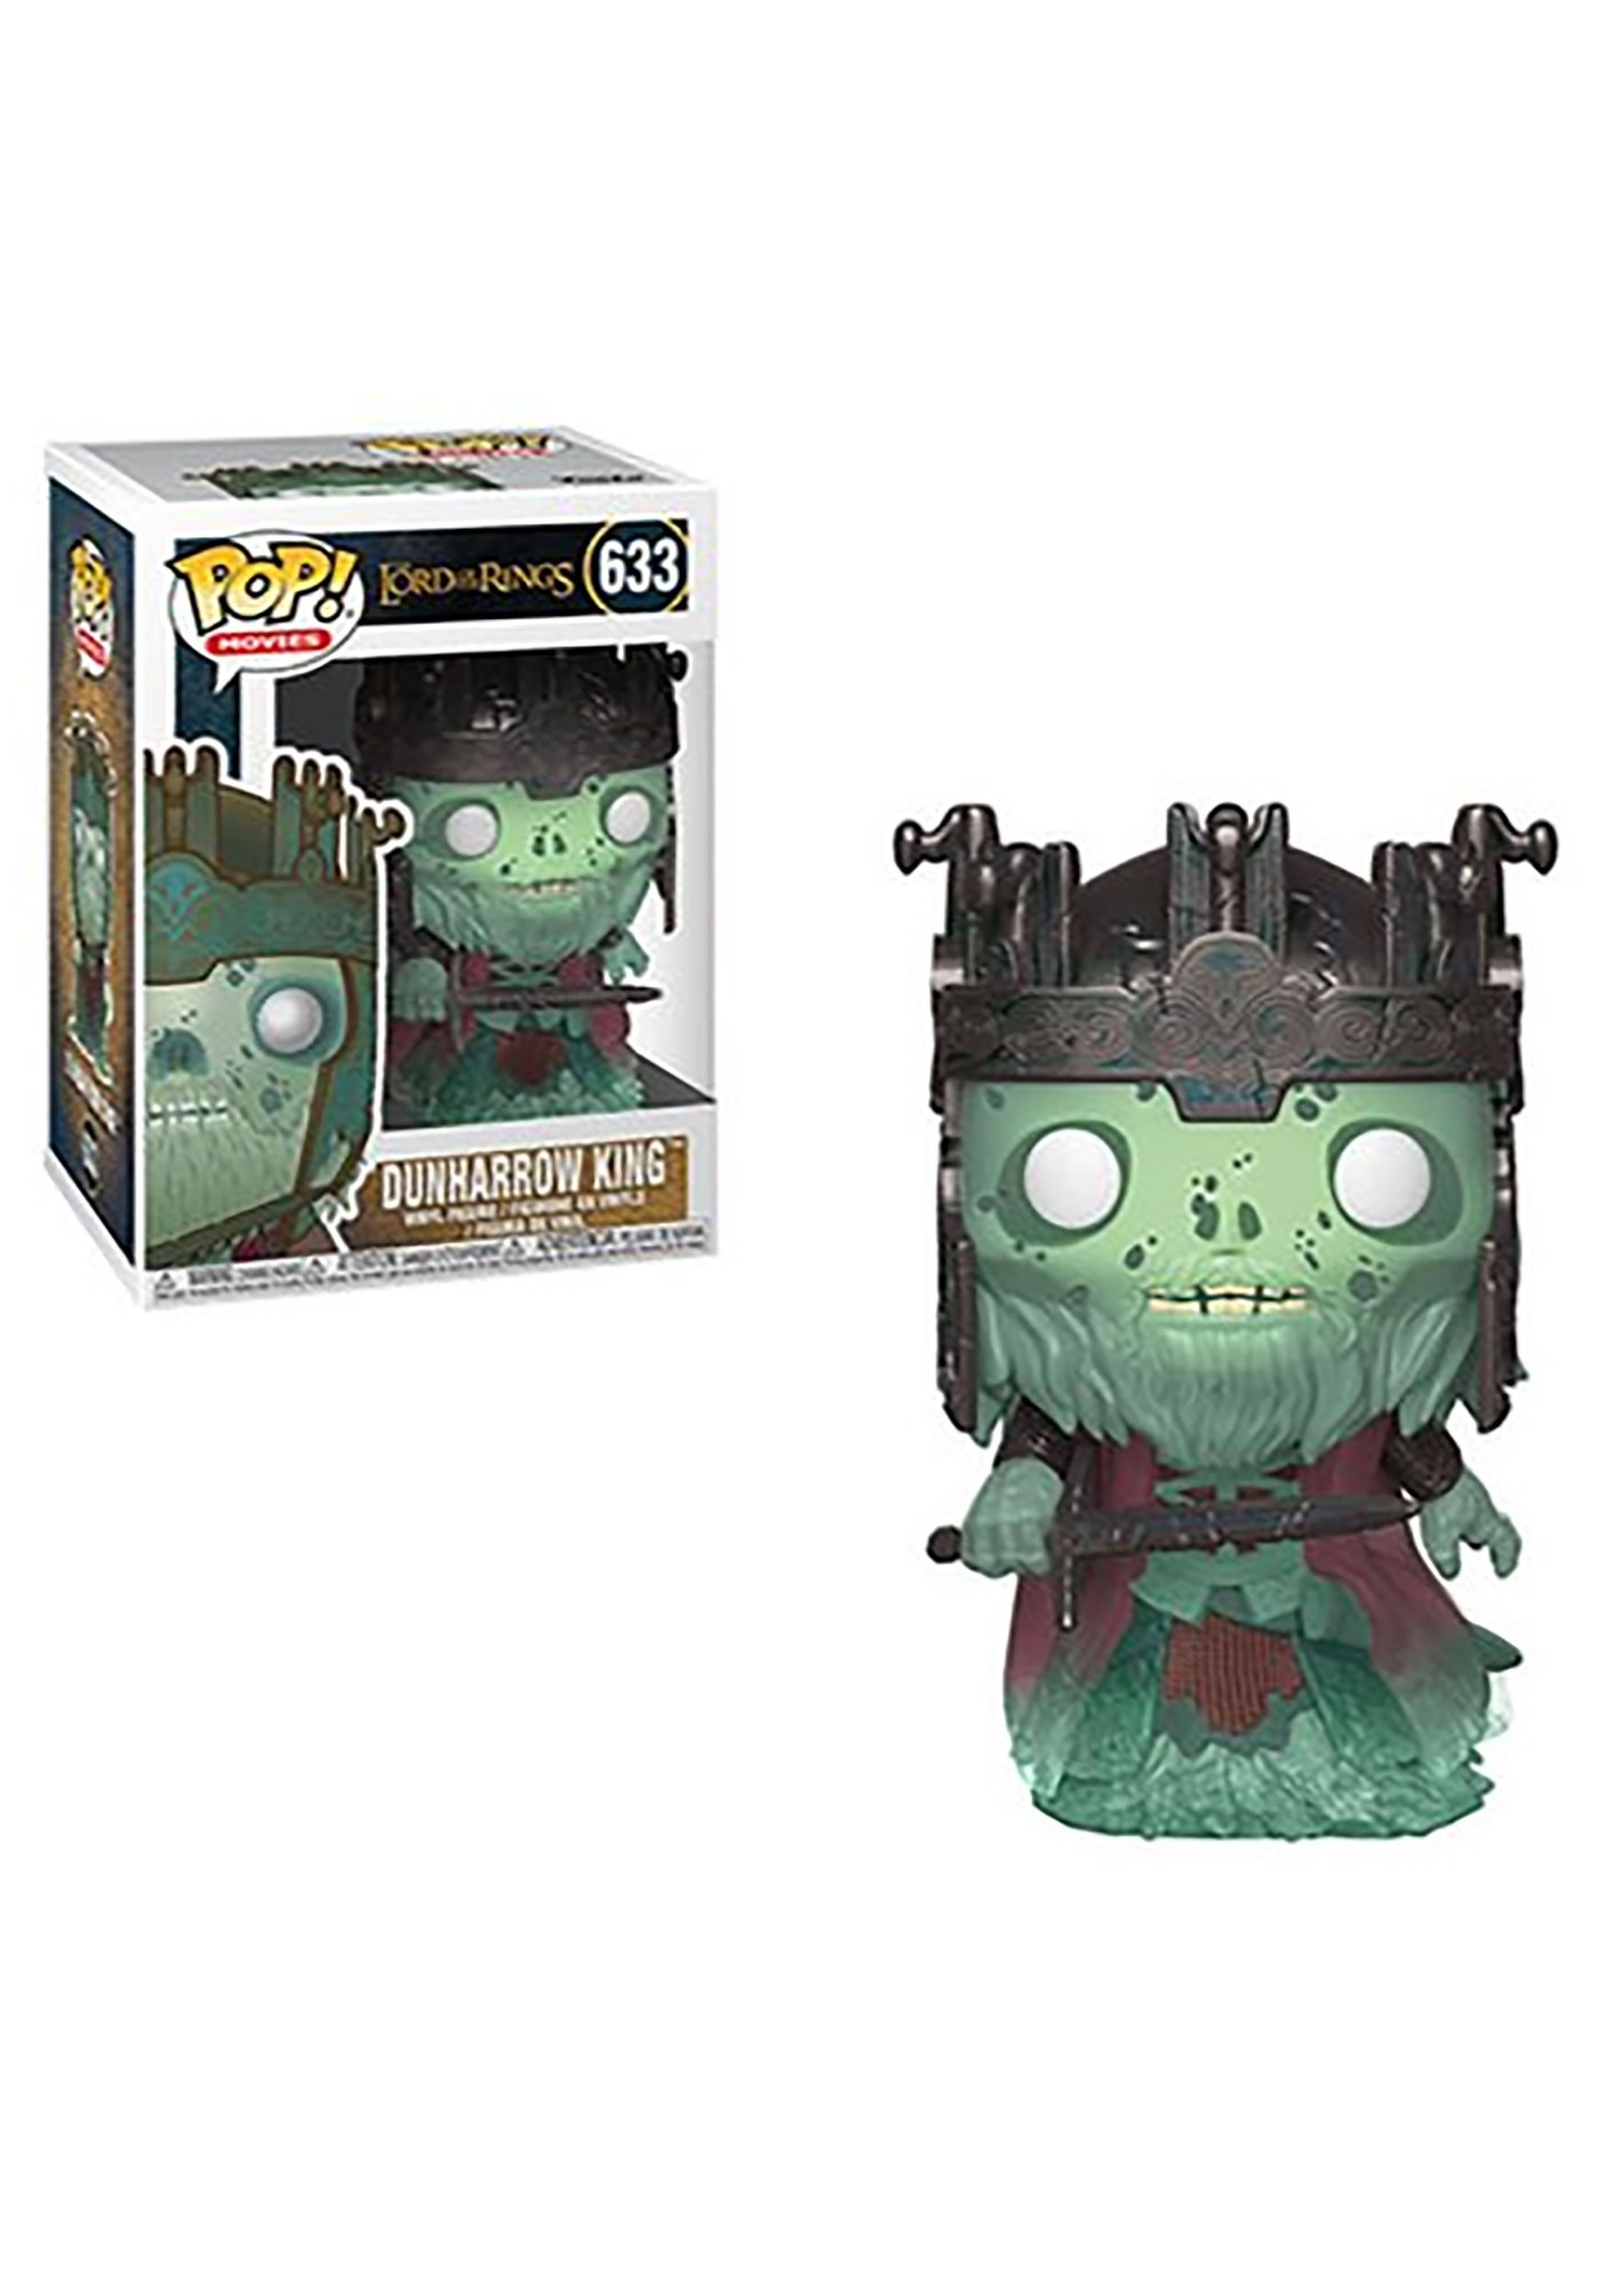 Pop! Movies: Dunharrow King- The Lord of the Rings